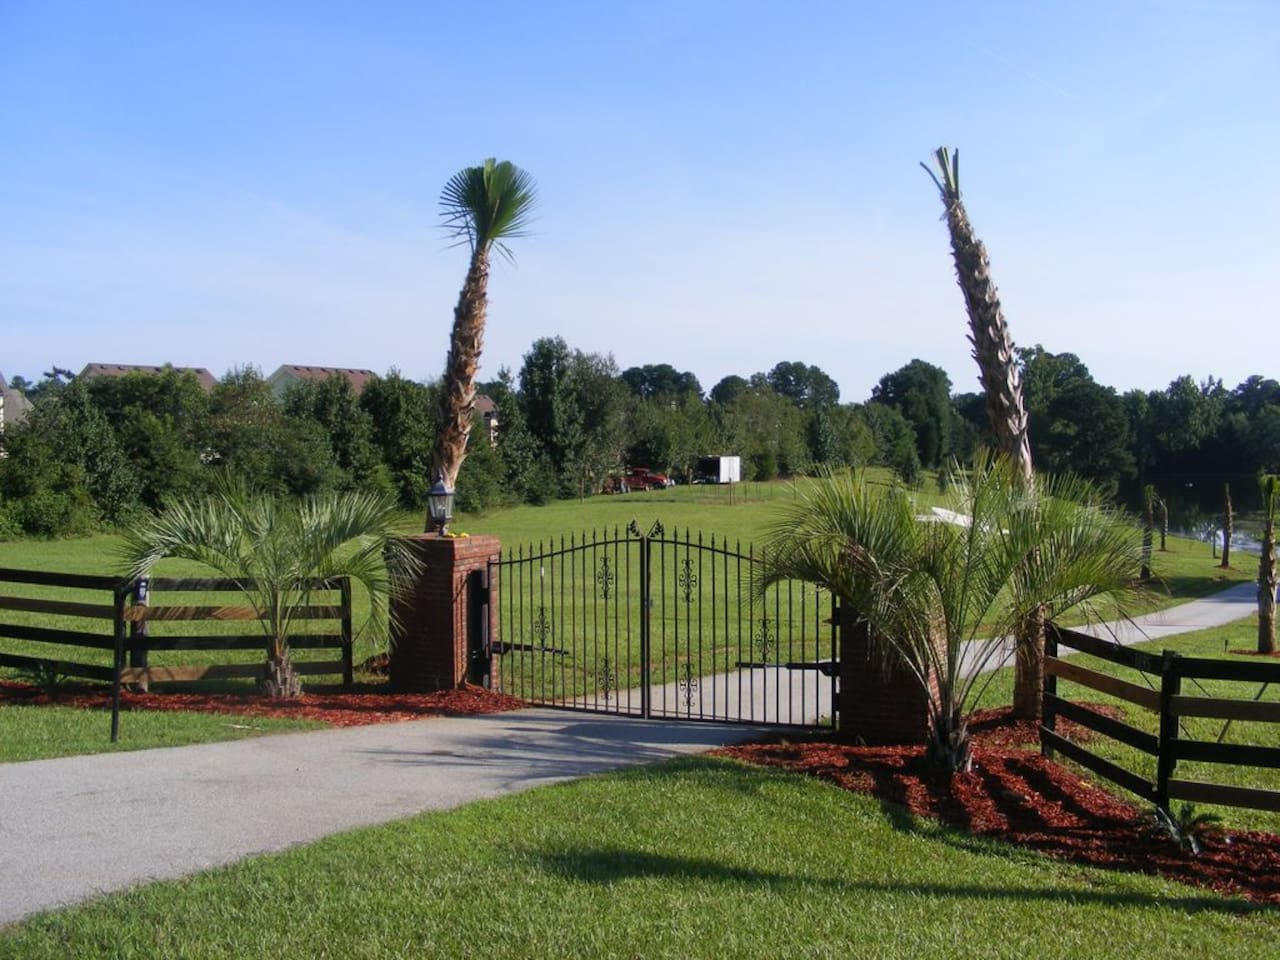 Main Gate to the Property.